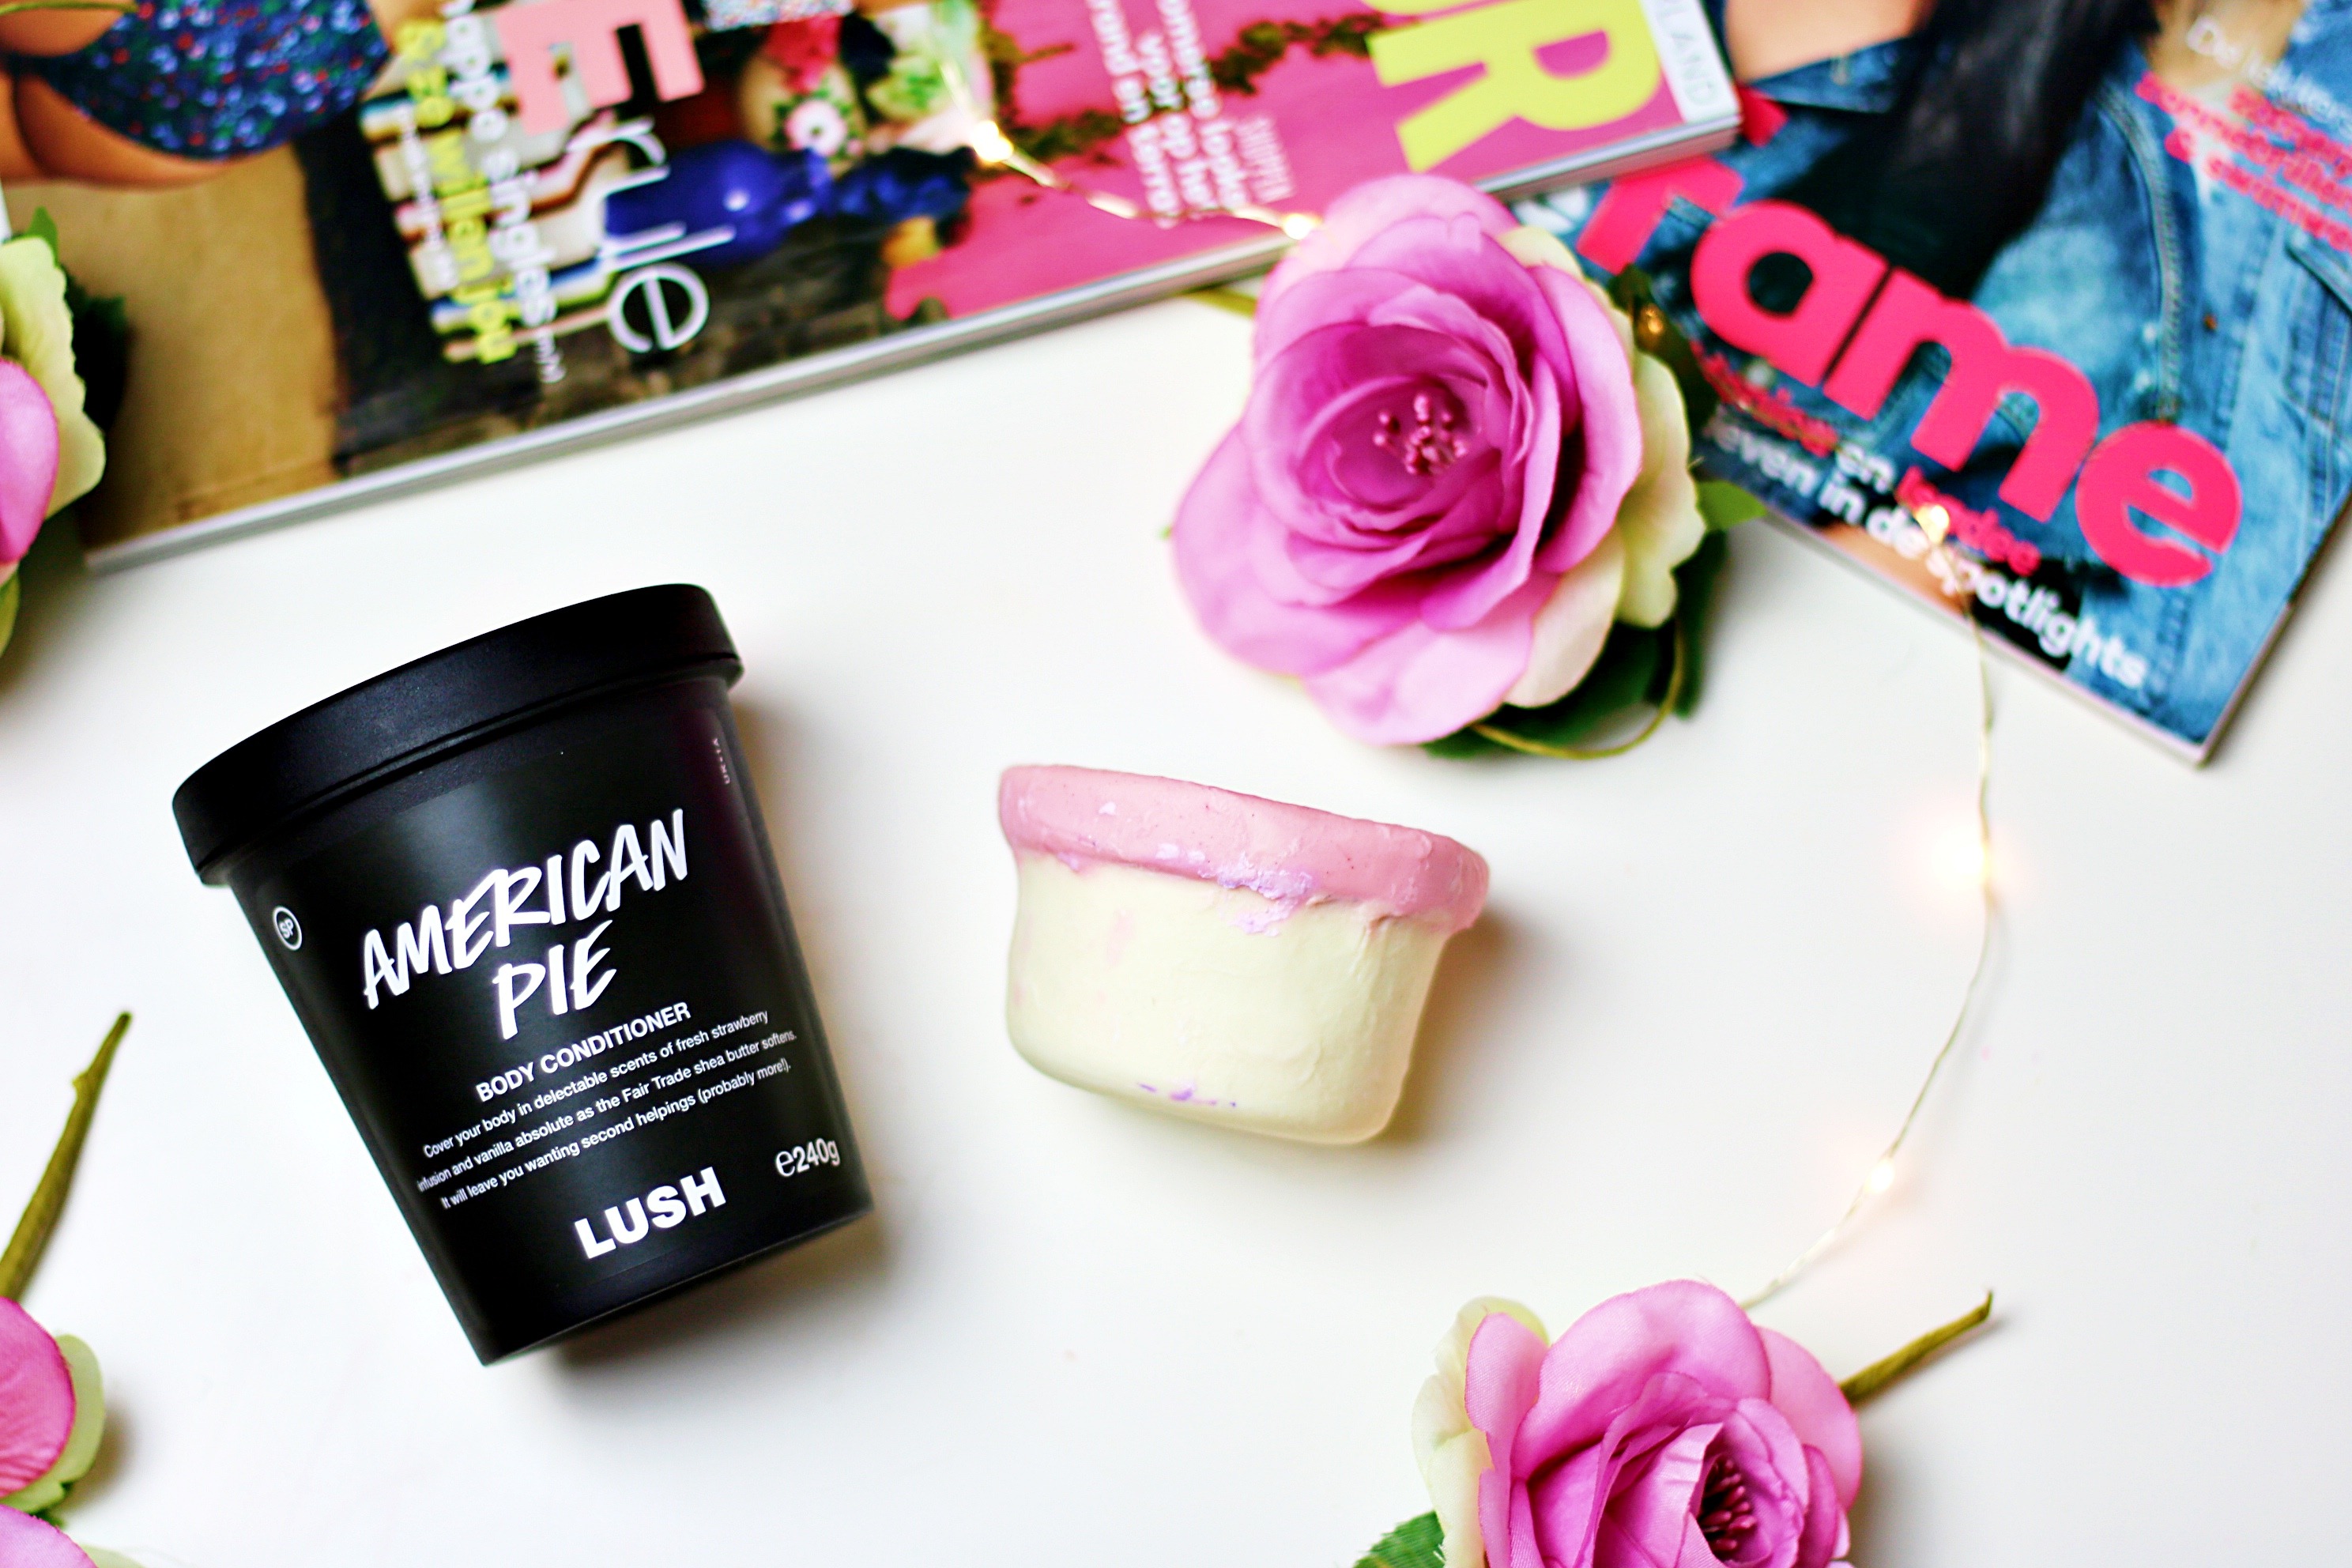 Lush American Pie Body Conditioner Naked vs. Potted: Is There A Difference?